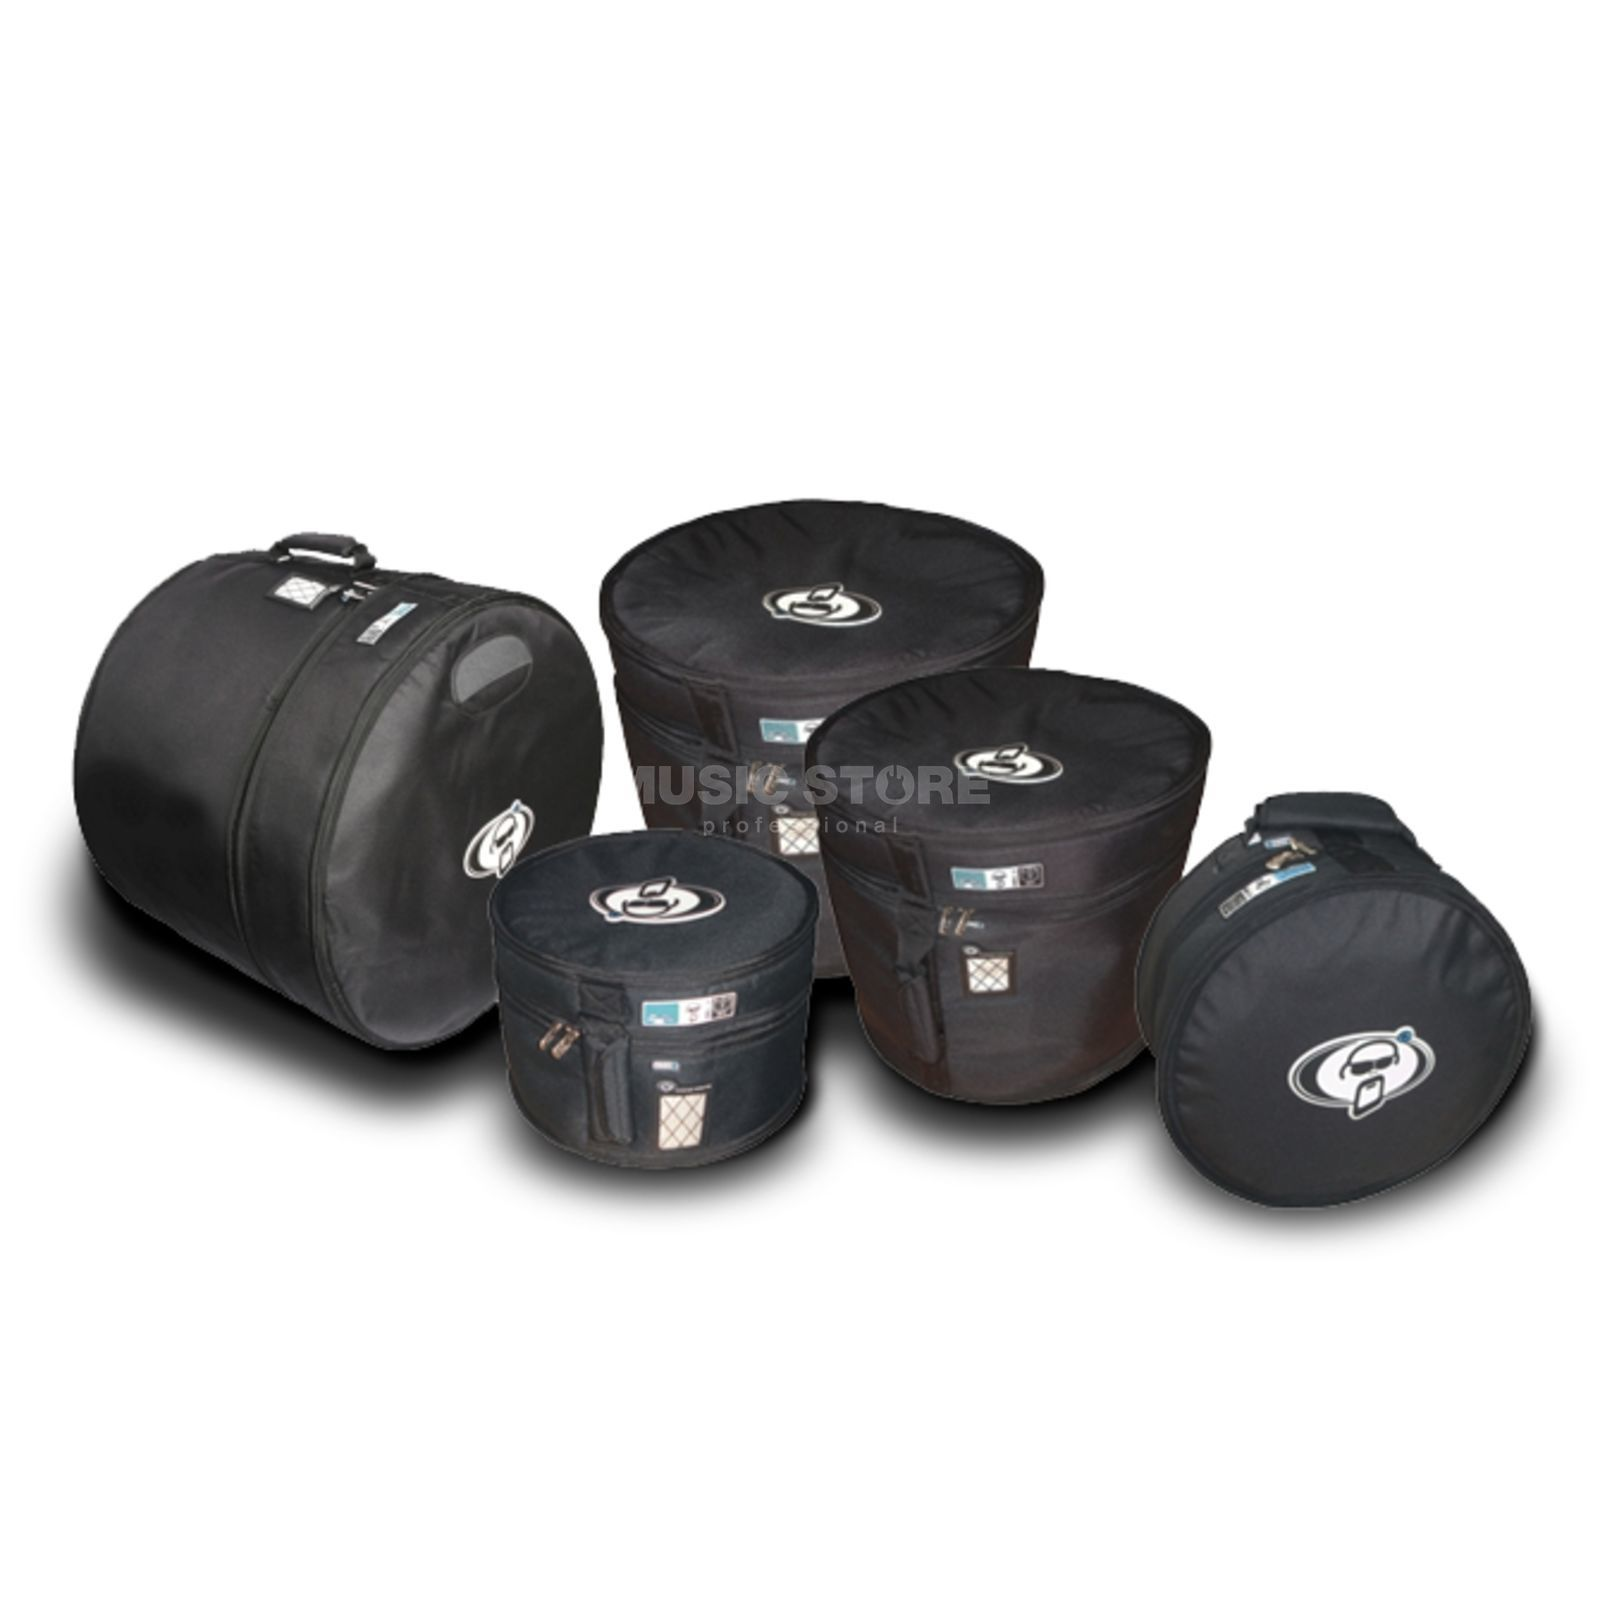 "Protection Racket BagSet SET 4, 22""x18"", 12""x9"", 14""x14"", 16""x16"", 14""x6,5"" Produktbild"